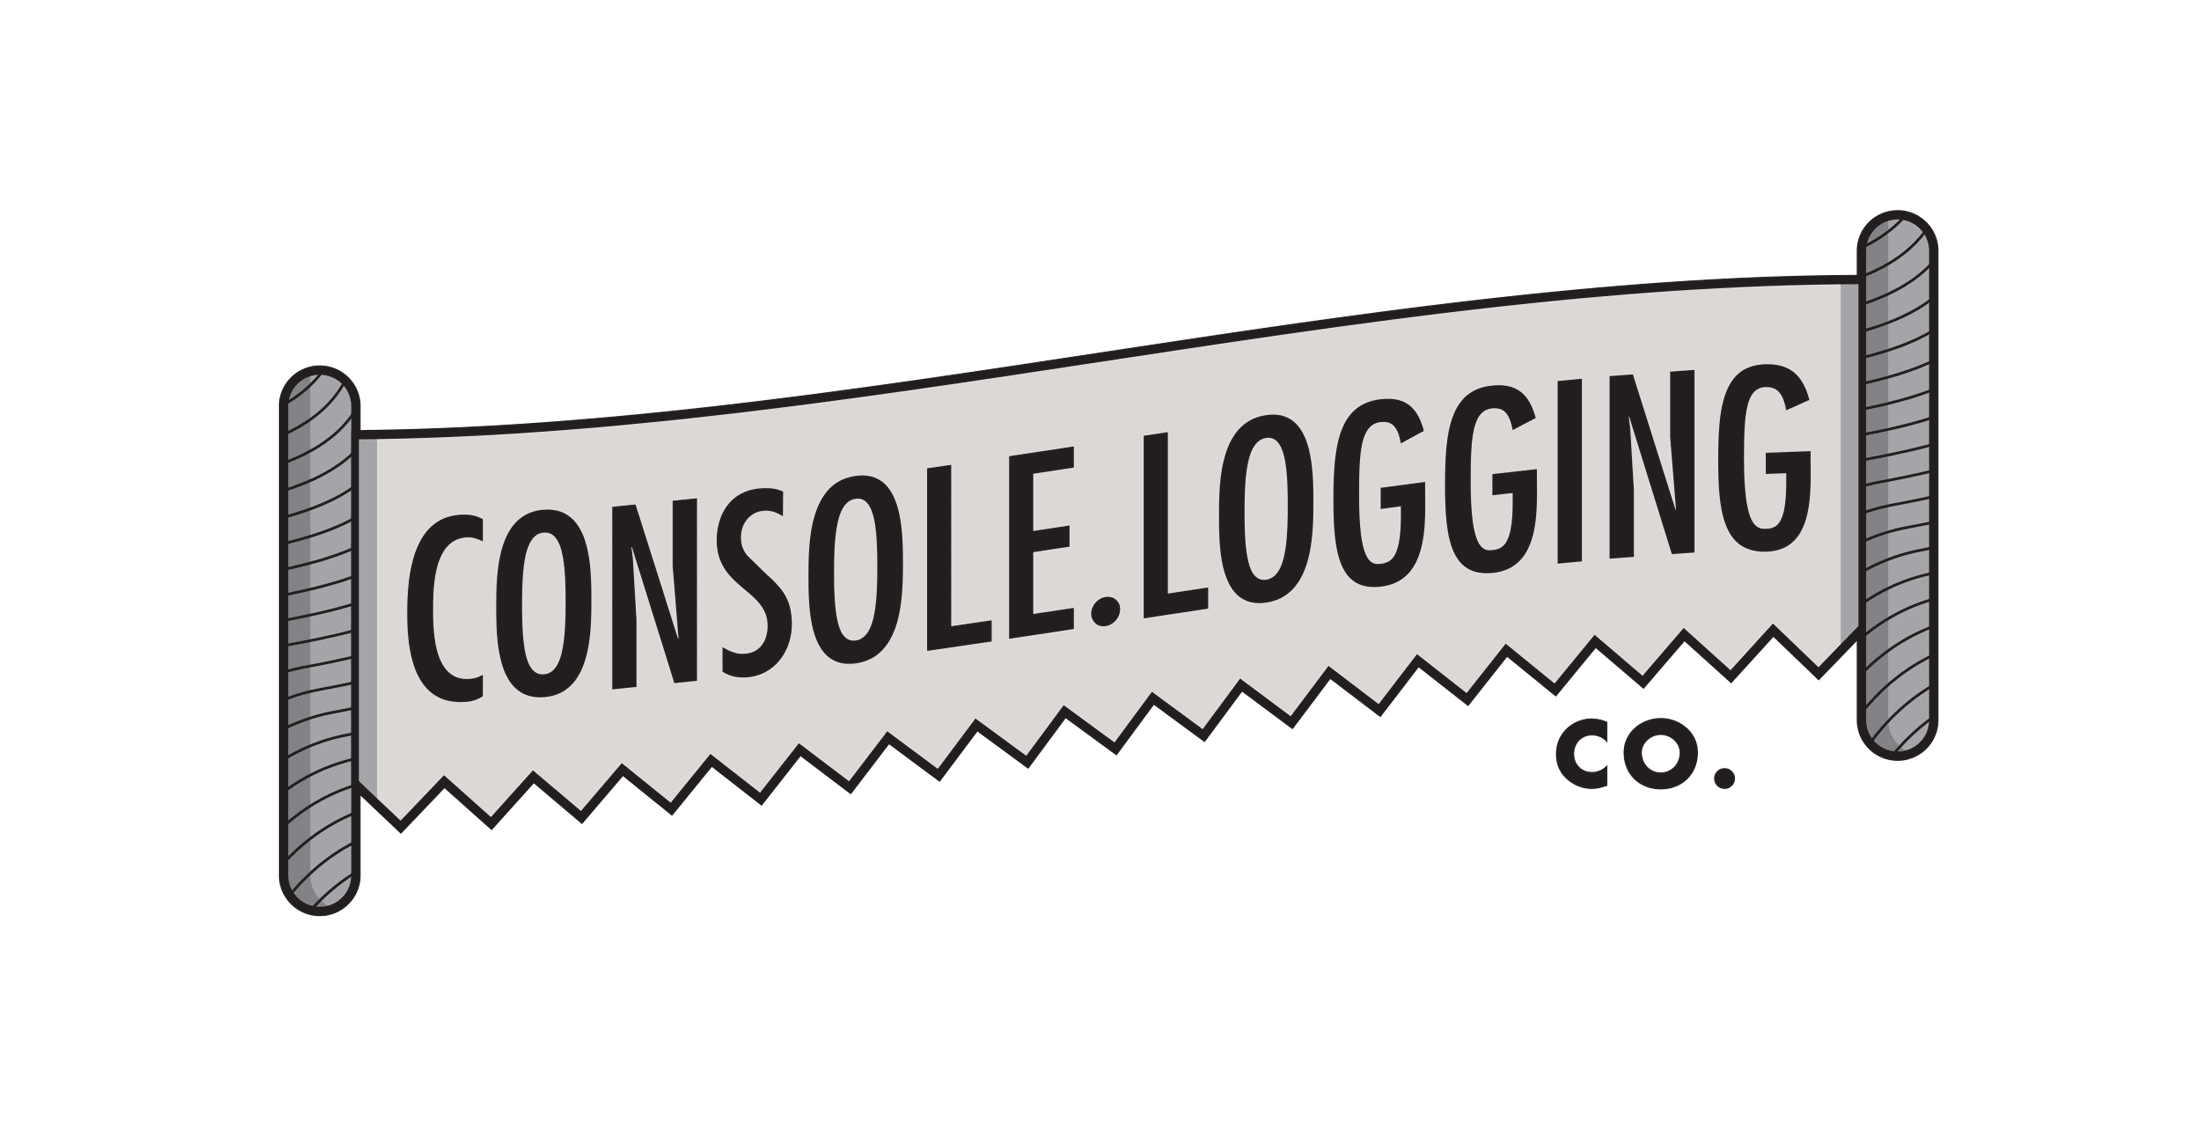 The Console.Logging Co. logo.